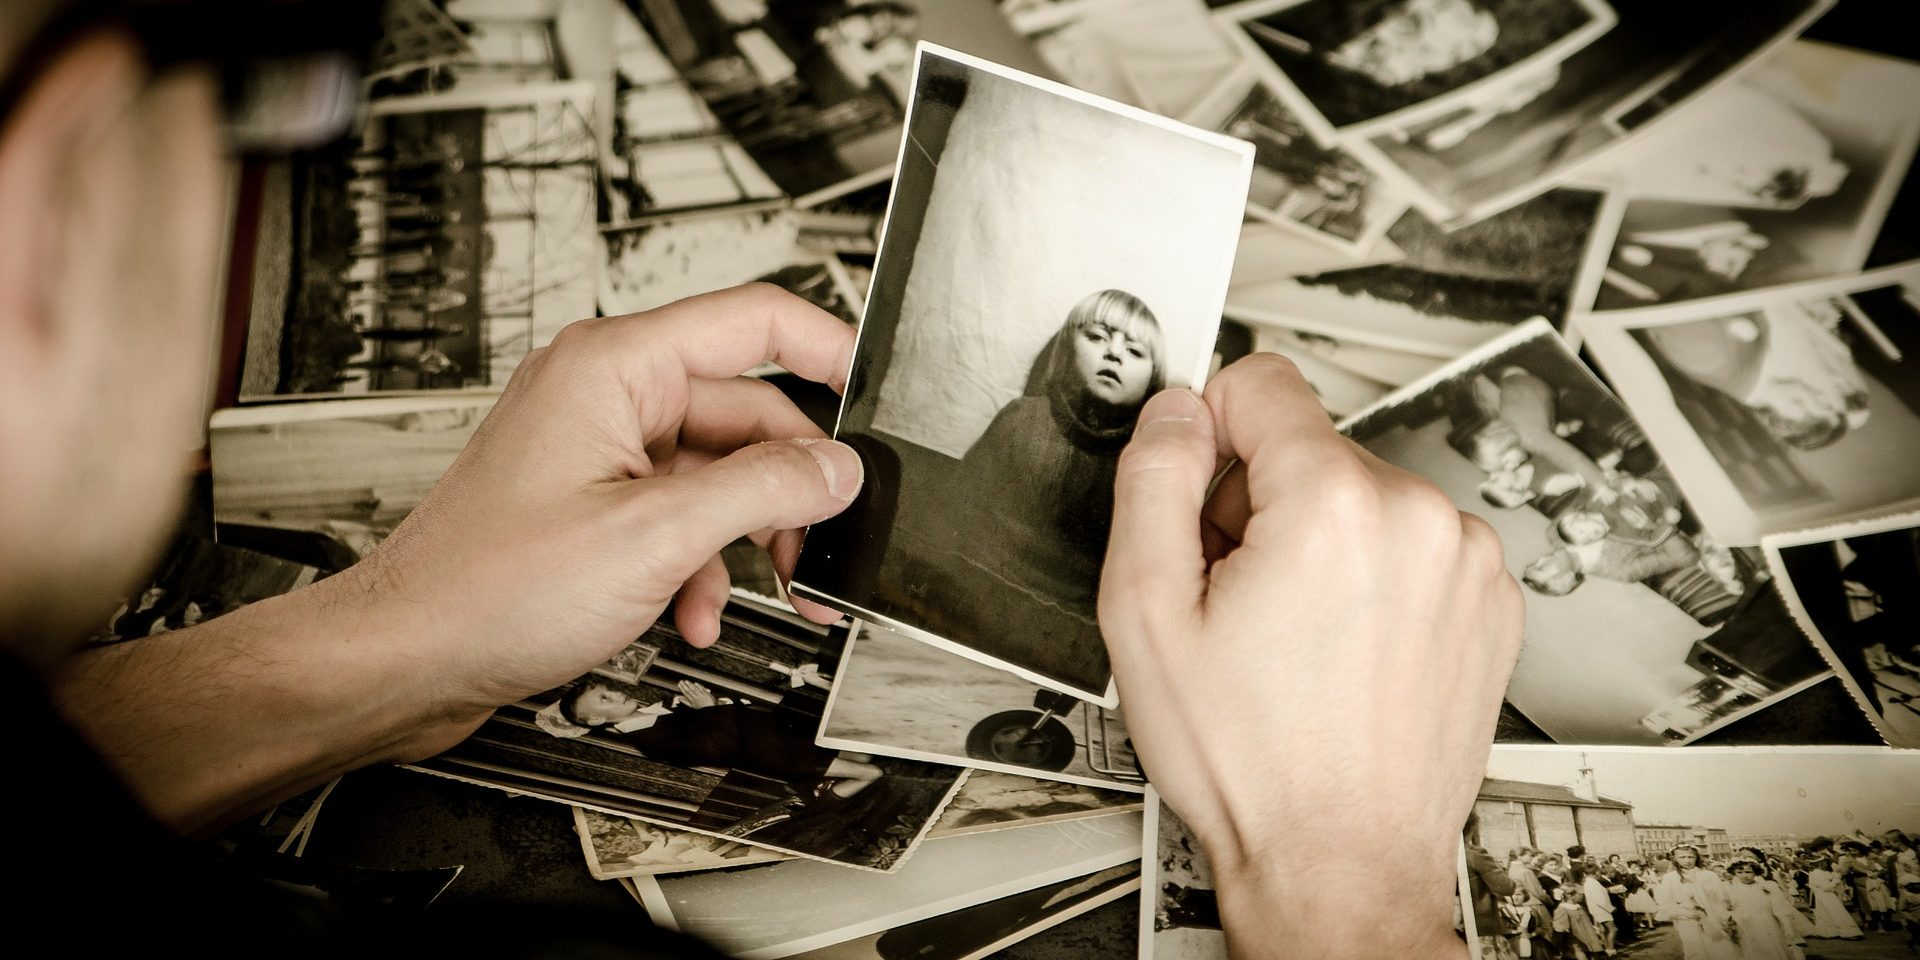 Black and white photos laid on table. The back of a person's head, with their hands holding a photo.